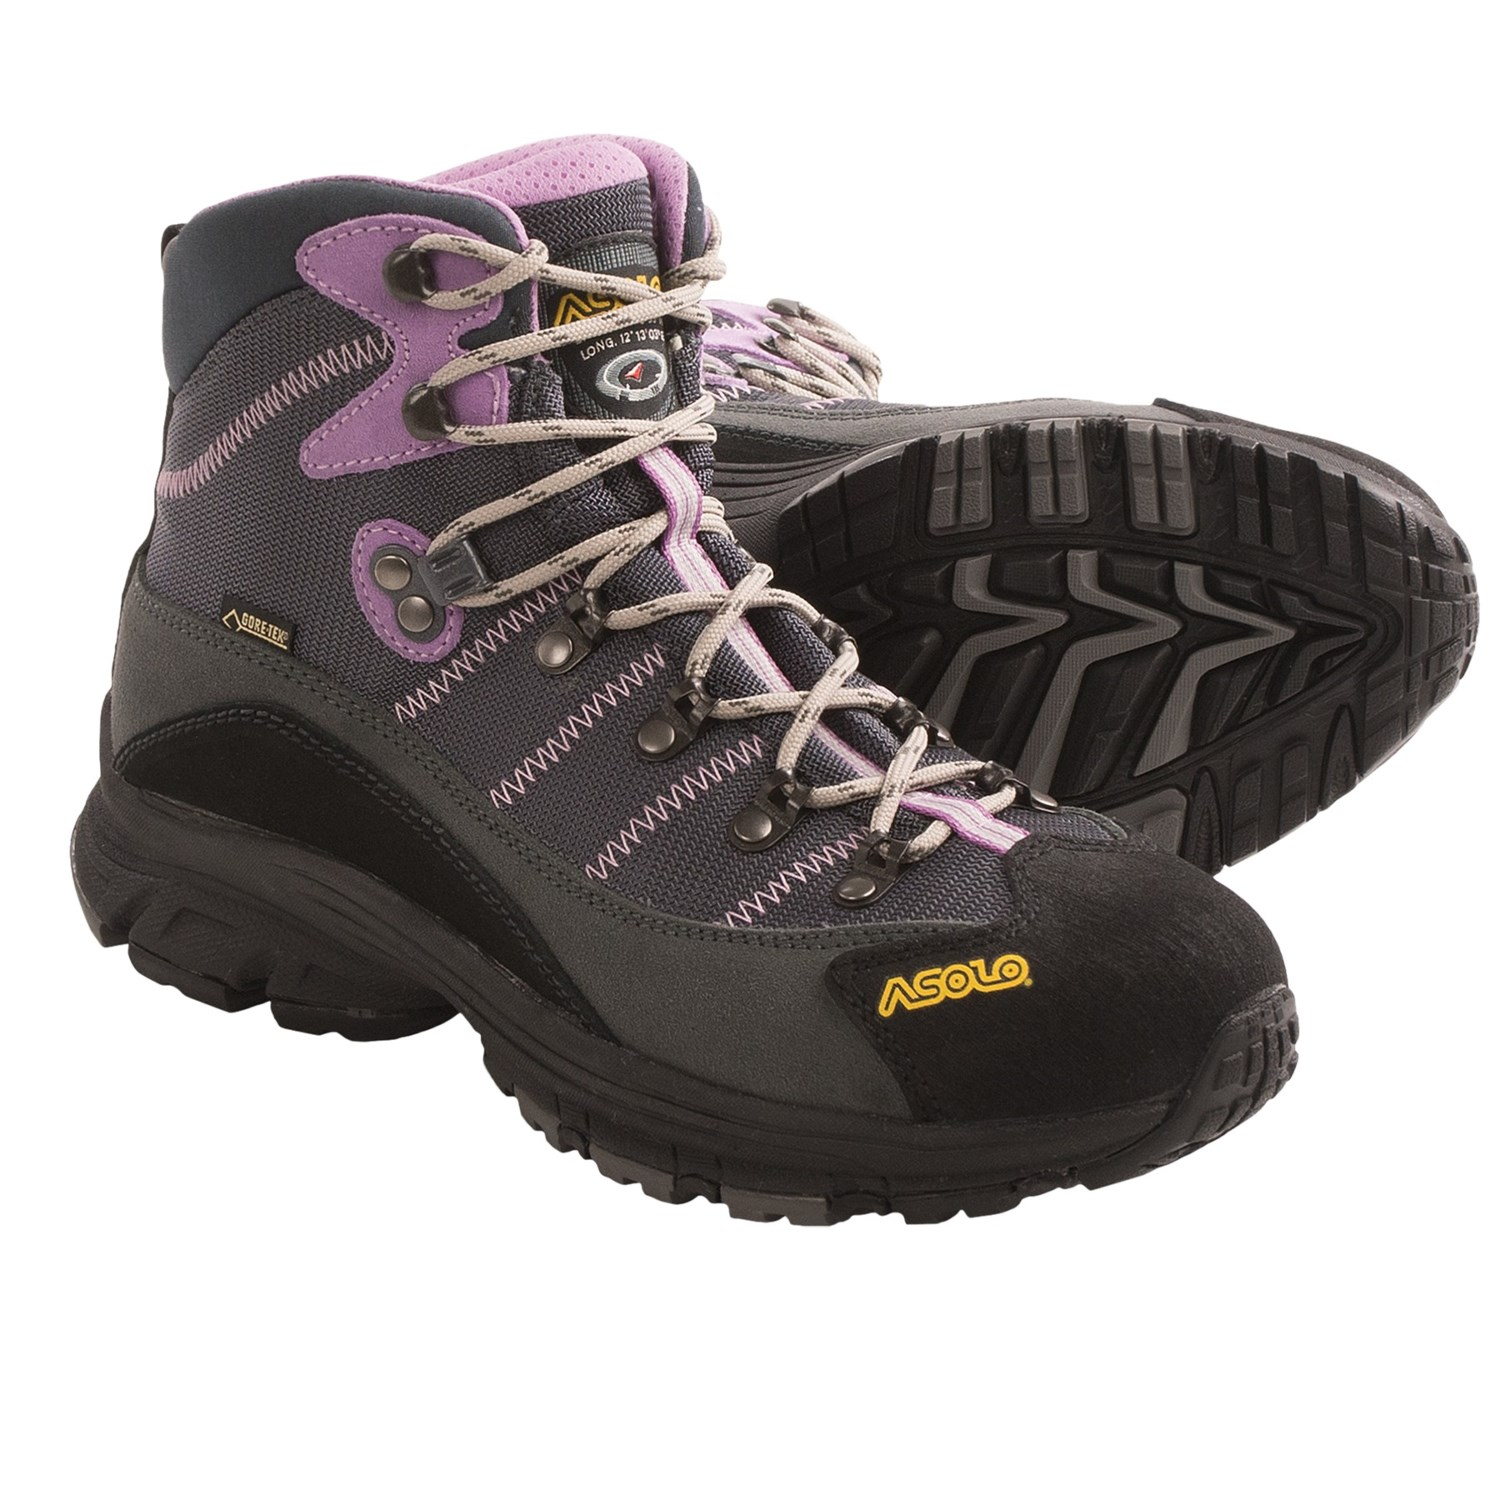 Asolo Horizon 1 Gore-Tex® Hiking Boots (For Women) - Save 39%